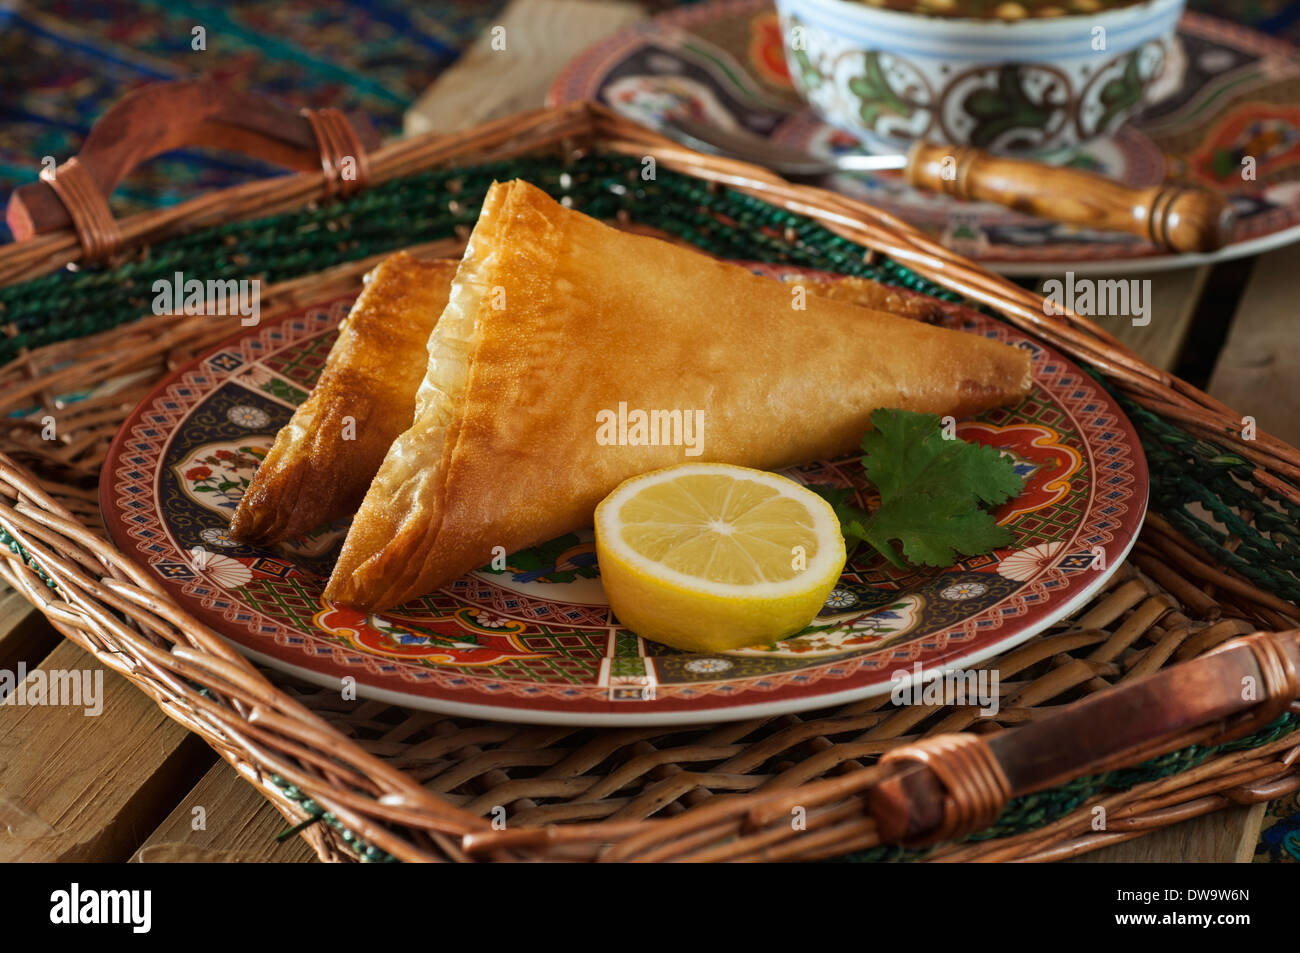 Brik à l'oeuf. Des pâtisseries tunisiennes frit. L'alimentation en Tunisie Photo Stock